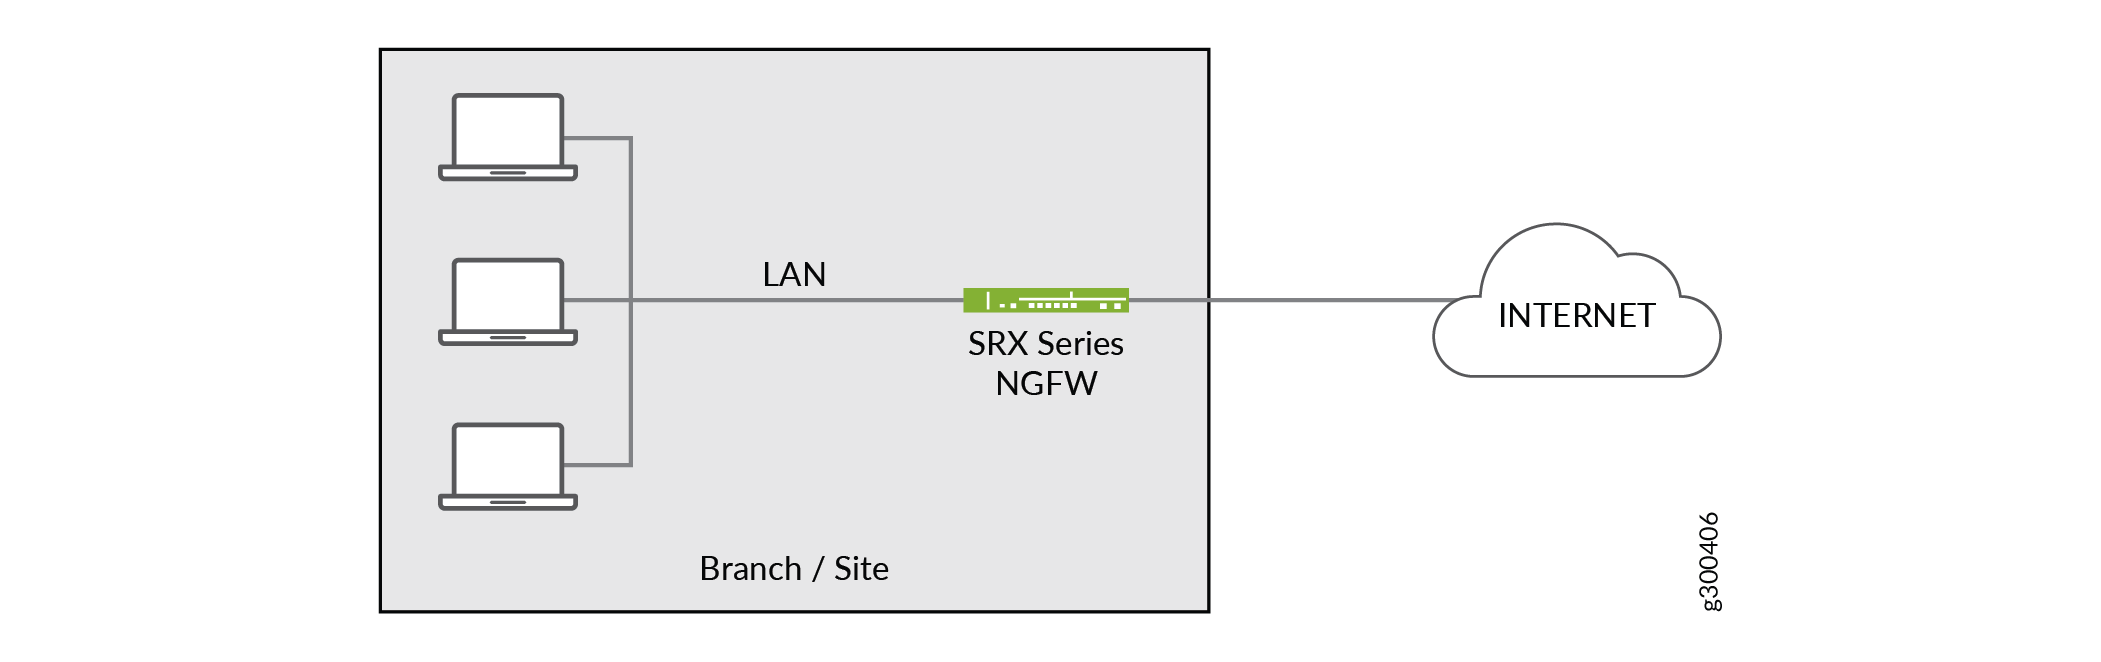 On-premise spoke site with next generation firewall